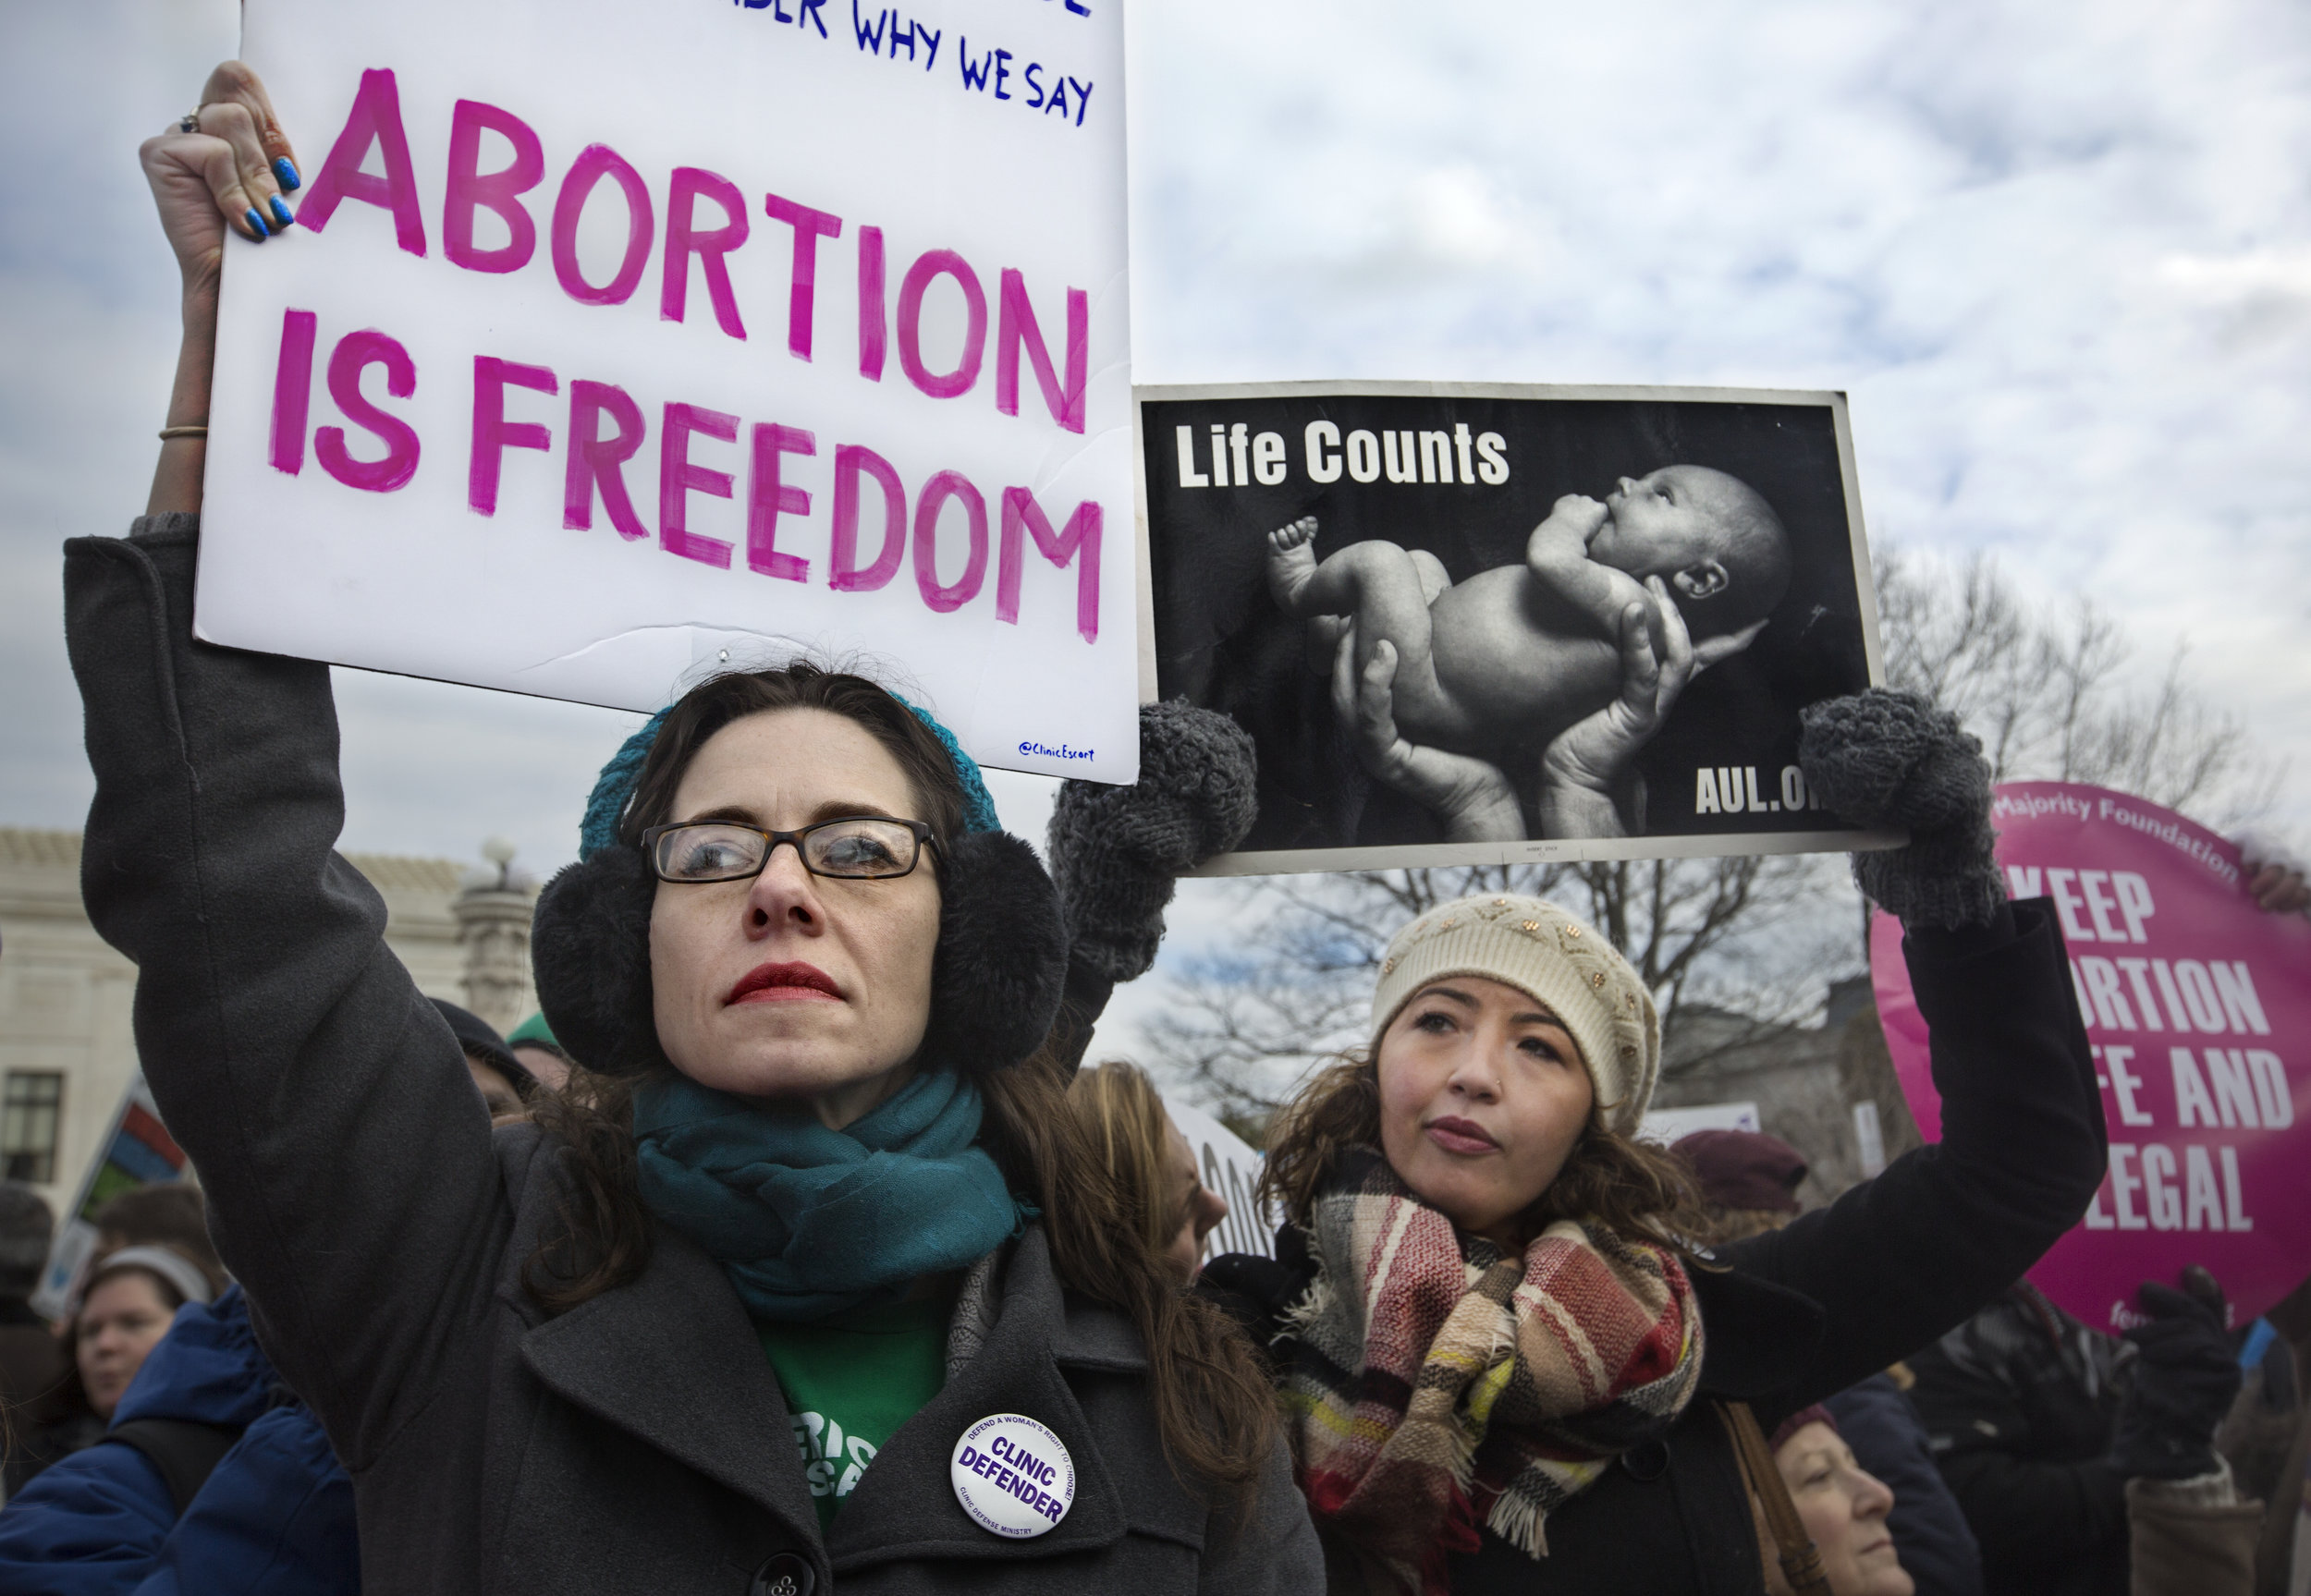 Pro-choice and anti-choice demonstrators protest outside the Supreme Court during the annual March for Life, held on the anniversary of Roe v. Wade in Washington, DC.